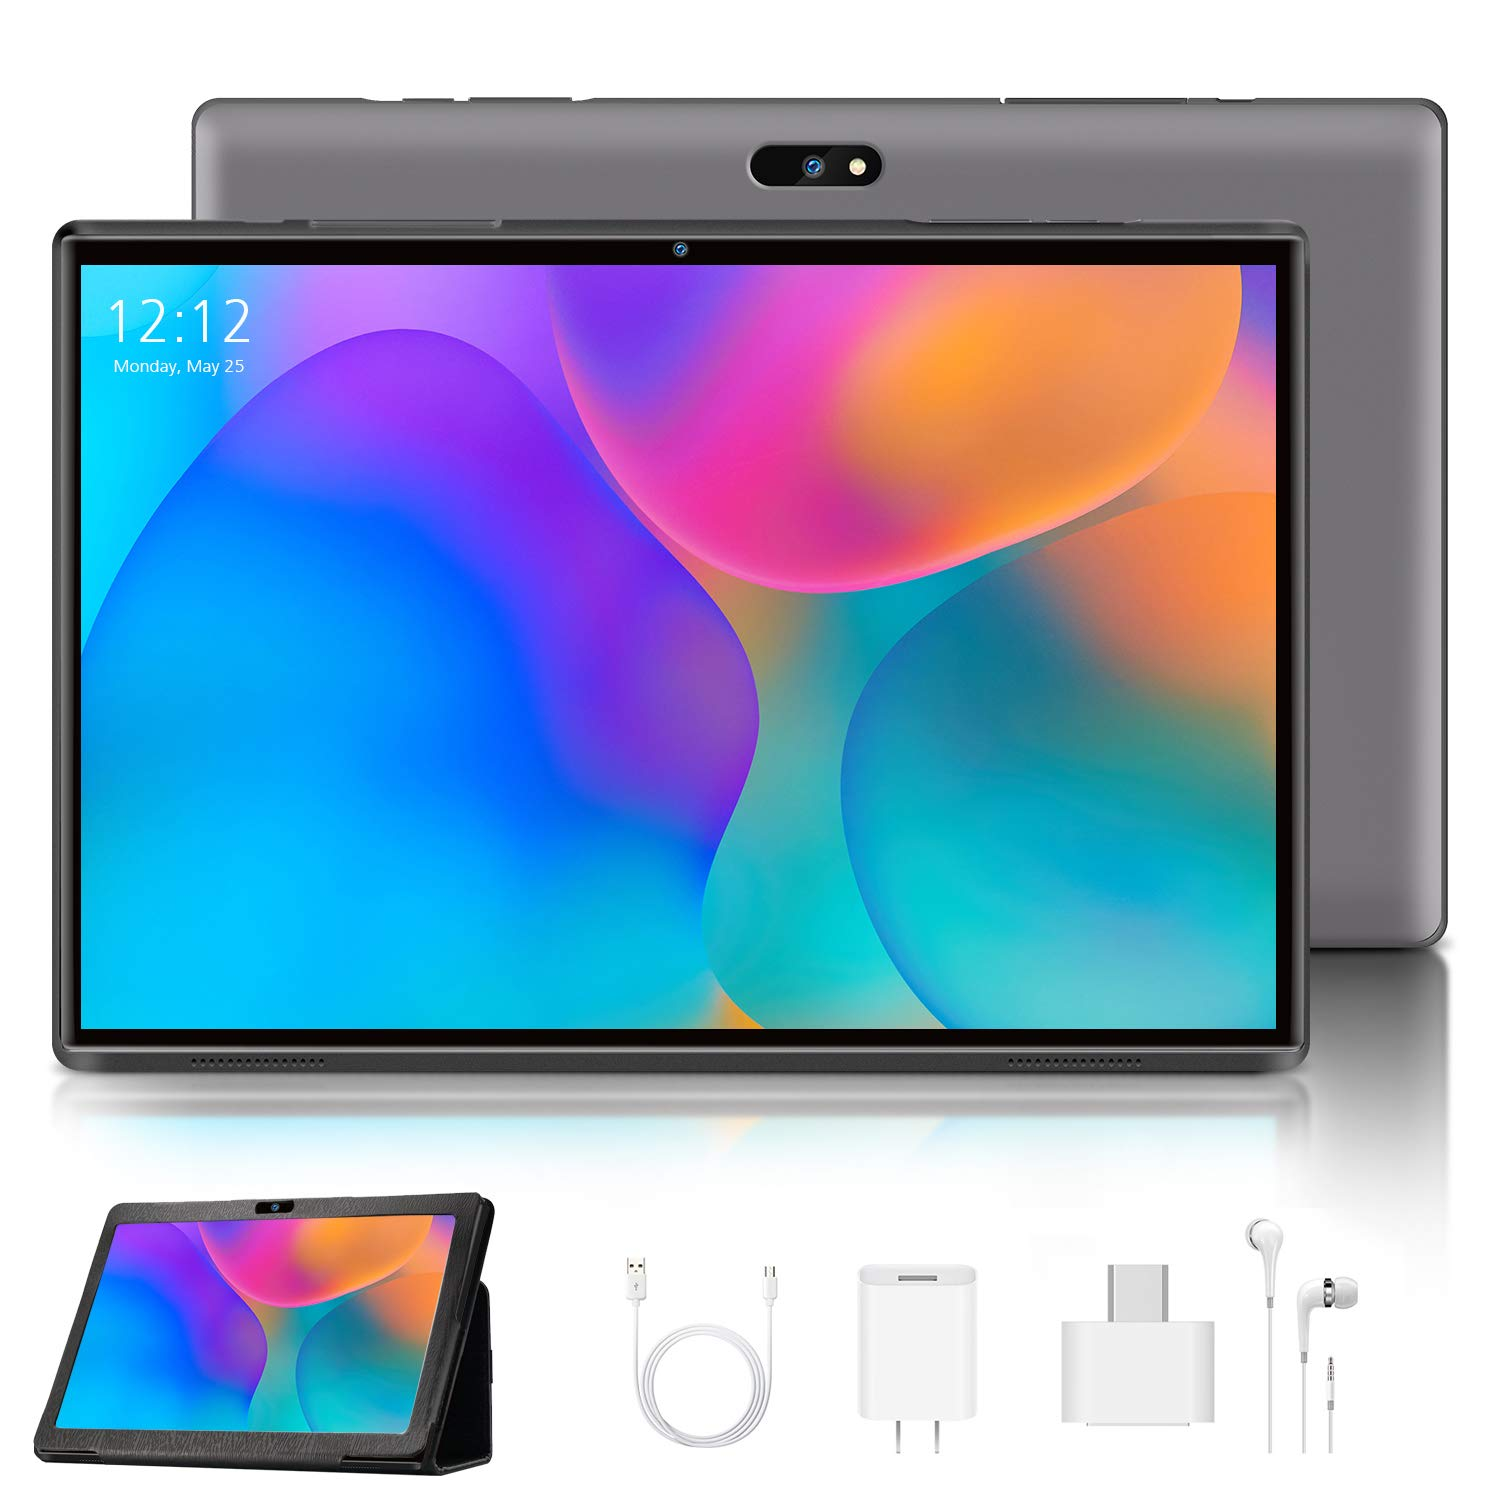 4G LTE Tablette Tactile 10.1 Pouces Android 9.0 Certifié par Google GMS, Tablette Full HD 1.3GHz CPU 3Go RAM 32Go ROM Support TF Extension (128 Go) et Double caméra WiFi/Bluetooth/GPS/OTG - Gris